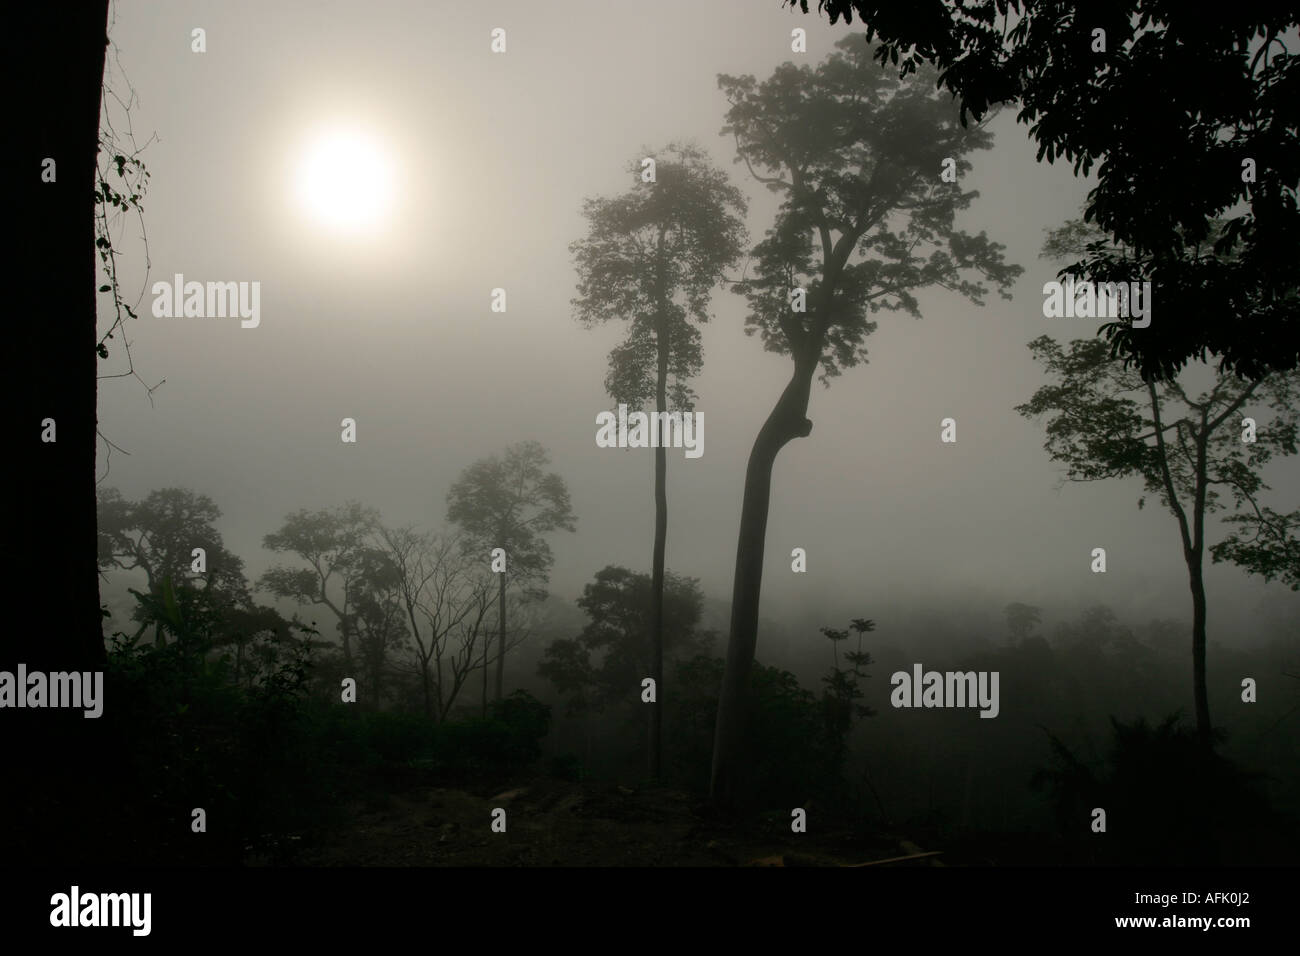 Early morning sunrise through mists and rainforest clouds, Ghana, West Africa - Stock Image